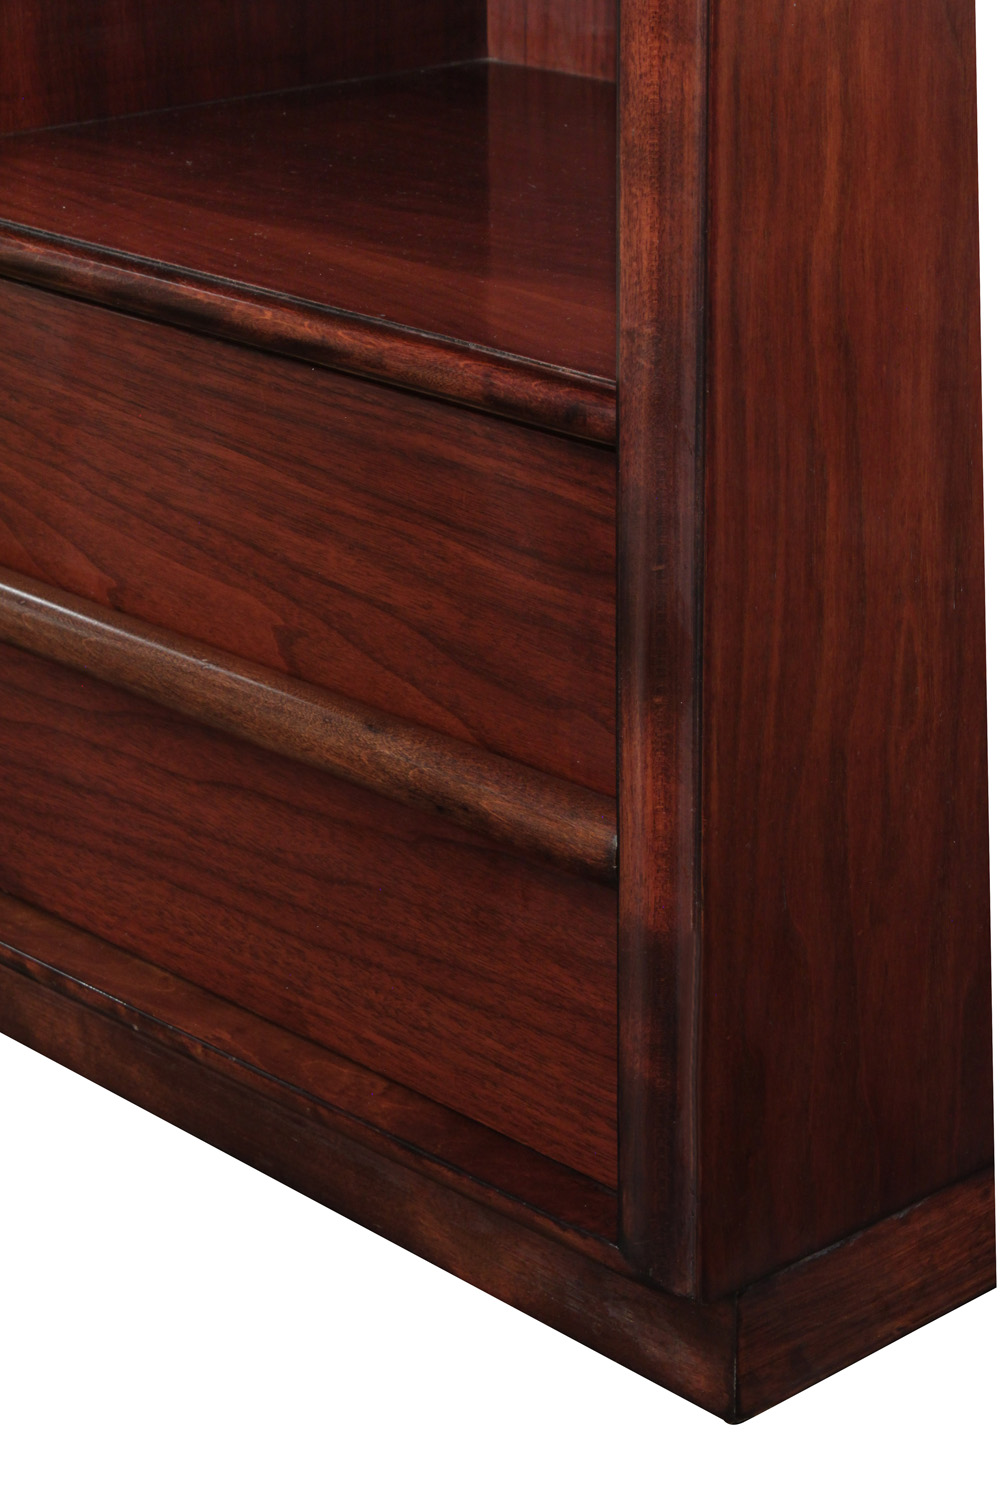 Gibbings 65 wlnt 1 drwer clean nightstands87 detail6 hires.jpg